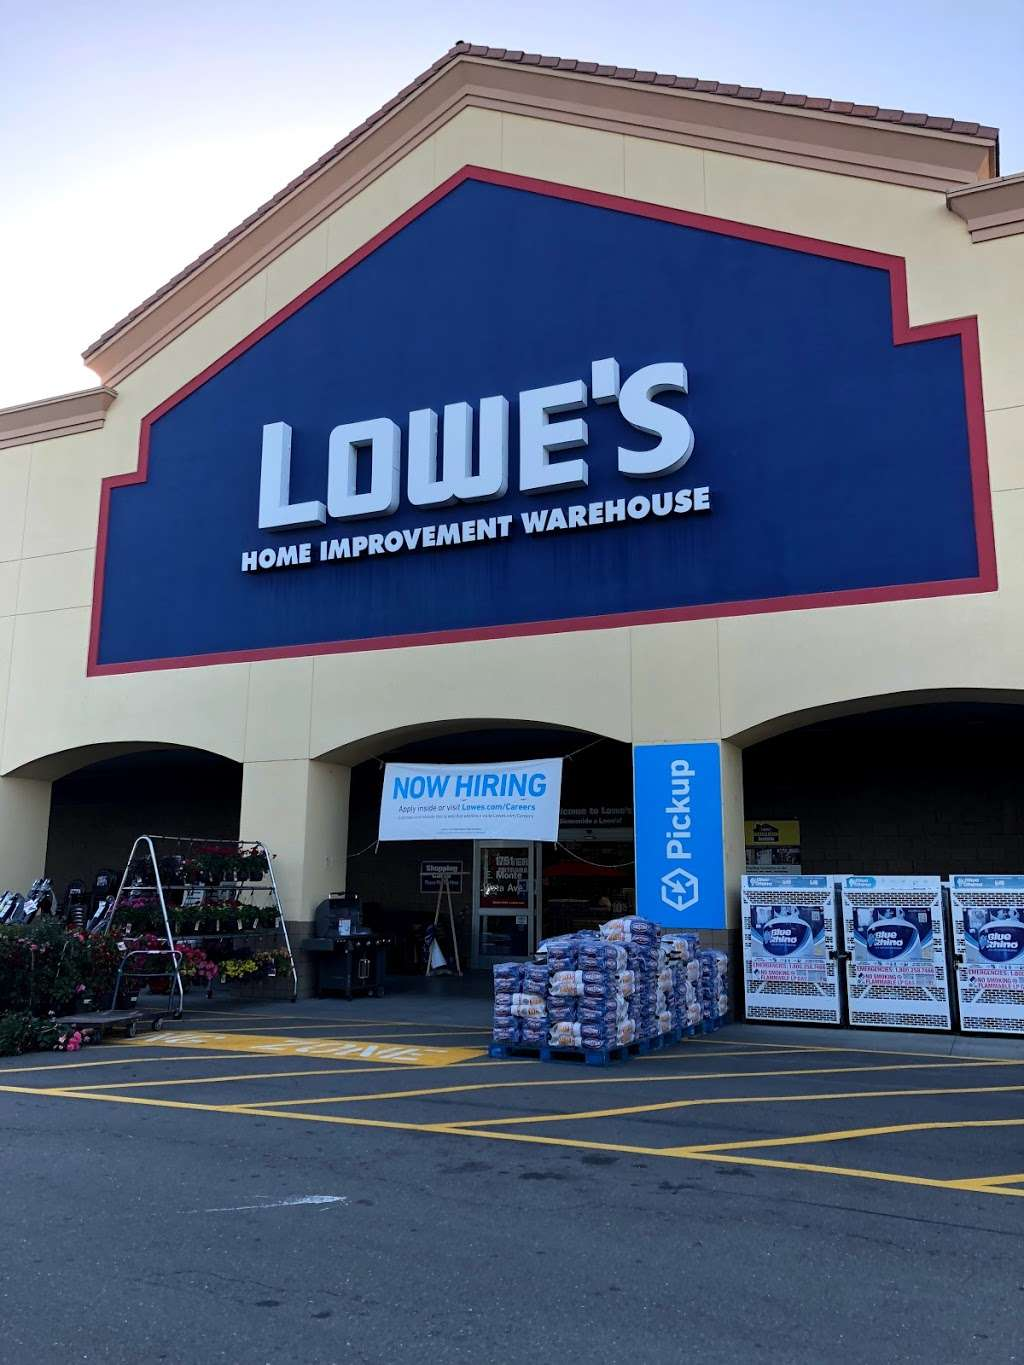 Lowes Home Improvement - hardware store  | Photo 3 of 9 | Address: 1751 E Monte Vista Ave, Vacaville, CA 95688, USA | Phone: (707) 455-4400